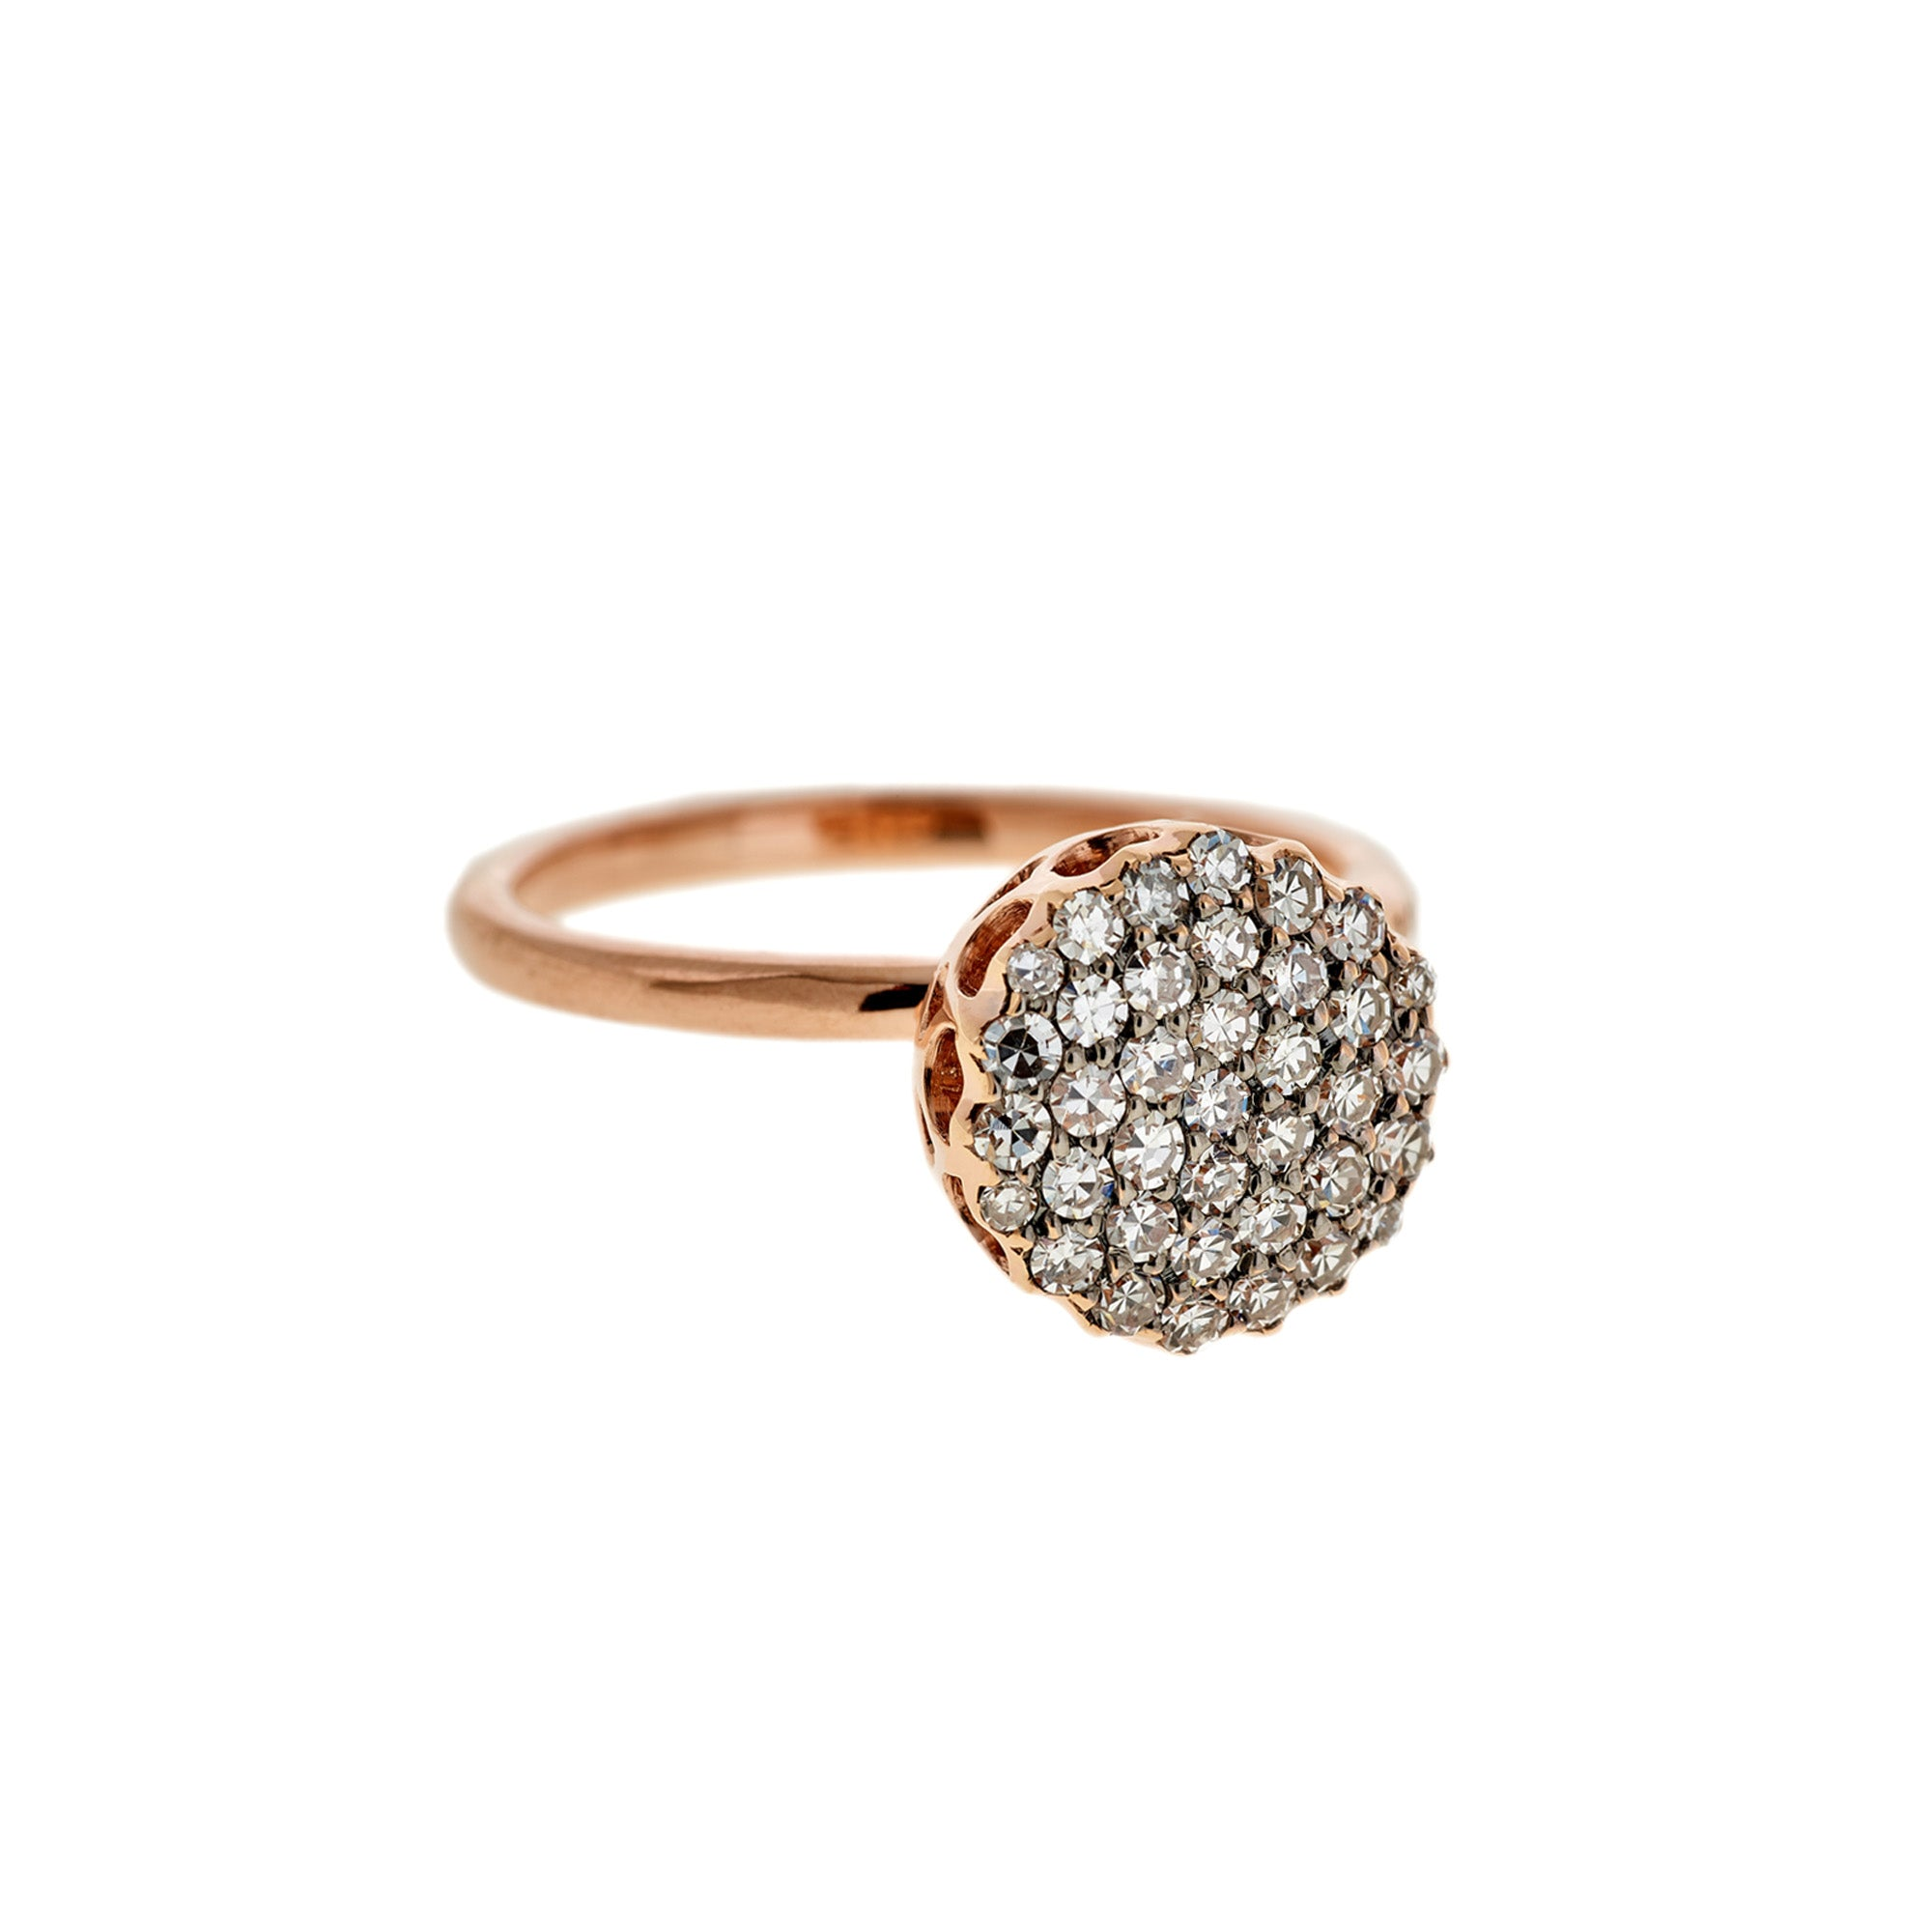 Selim Mouzannar Beirut Basic Ring - Pave Diamond - Rings - Broken English Jewelry